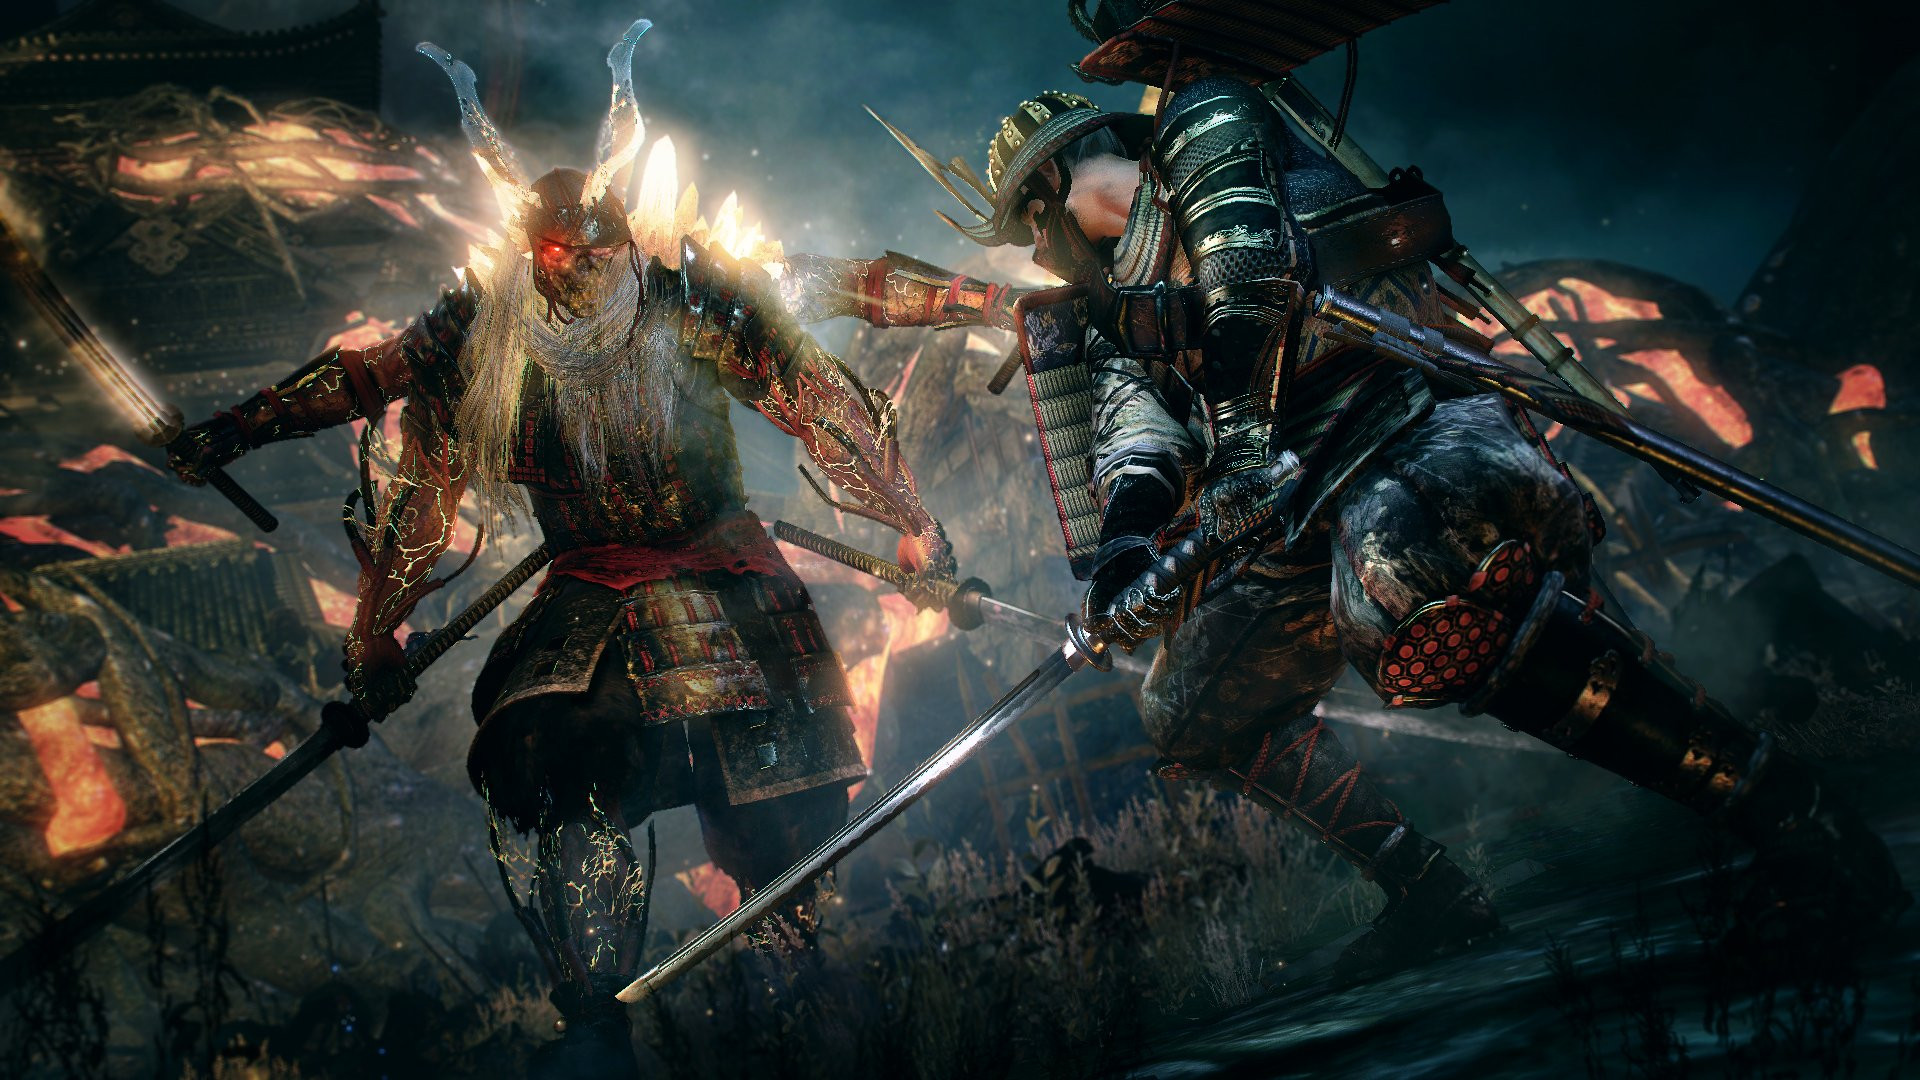 Nioh 2 - how to get all the awards (achievements, achievements) and get platinum